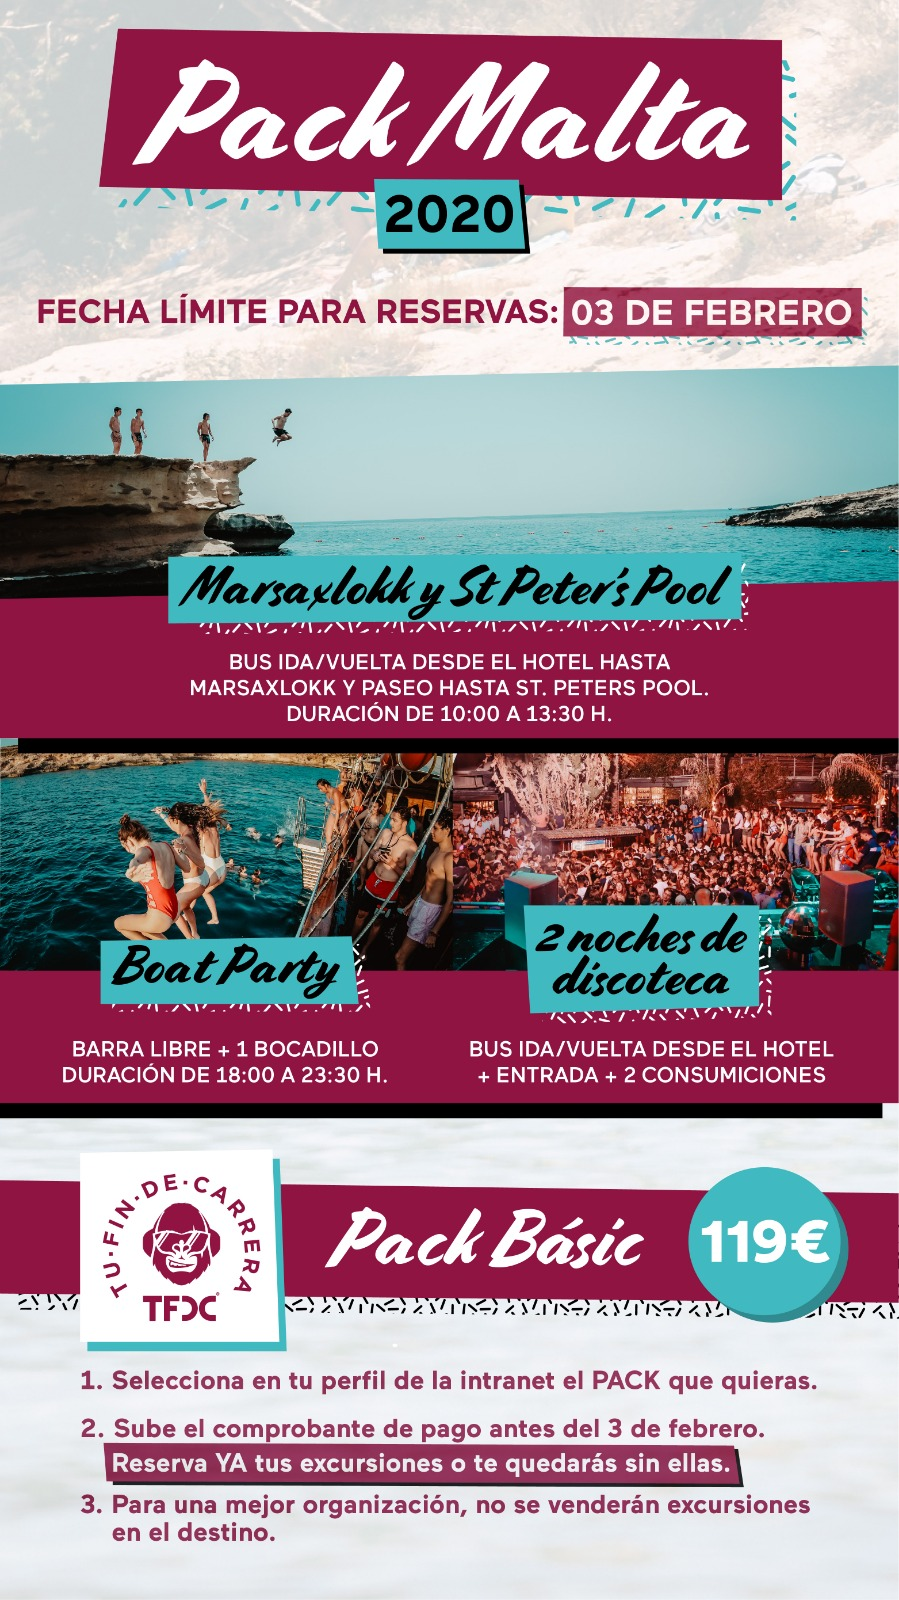 Packs de excursiones en Malta